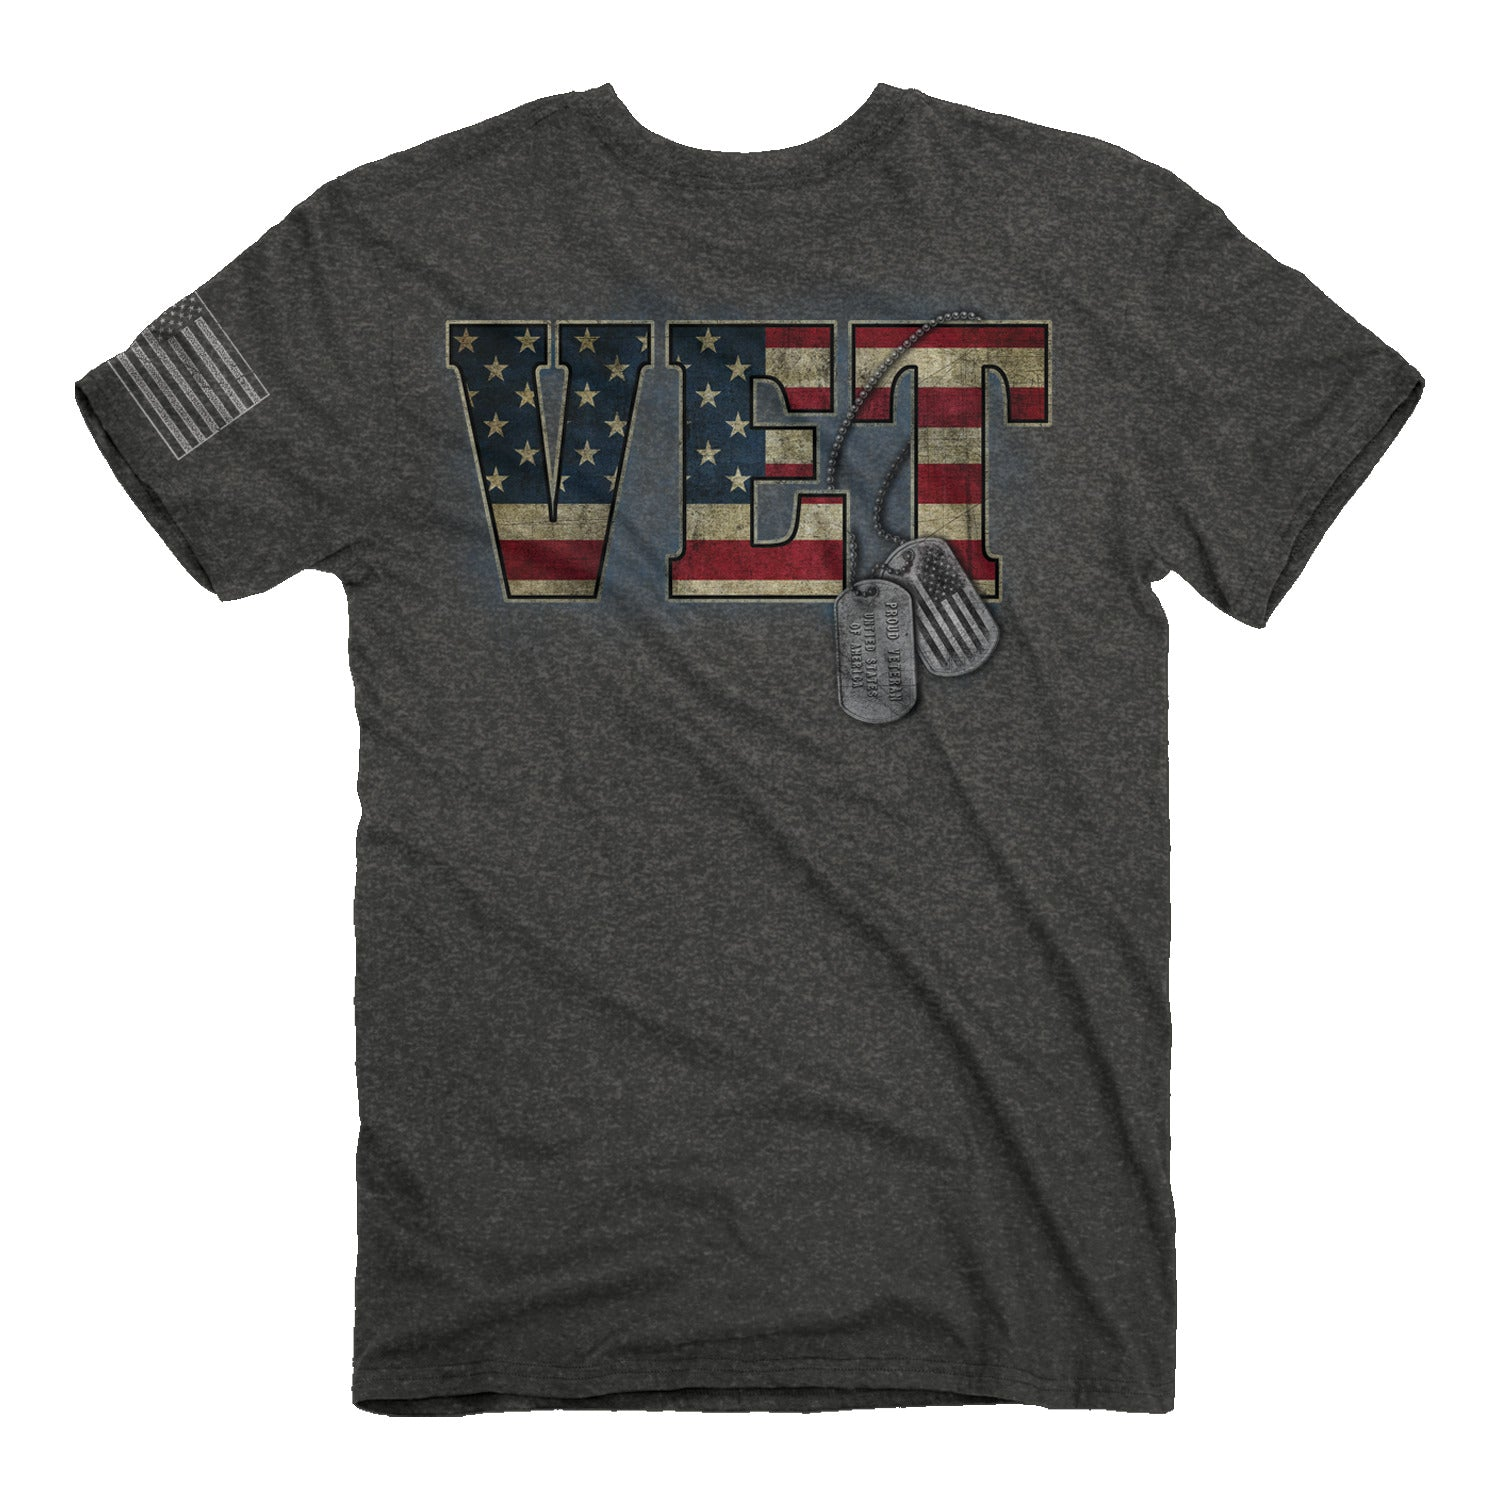 "Buck Wear Men's ""Vet"" Tag USA Flag Graphic Tee in Dark Heather Color"